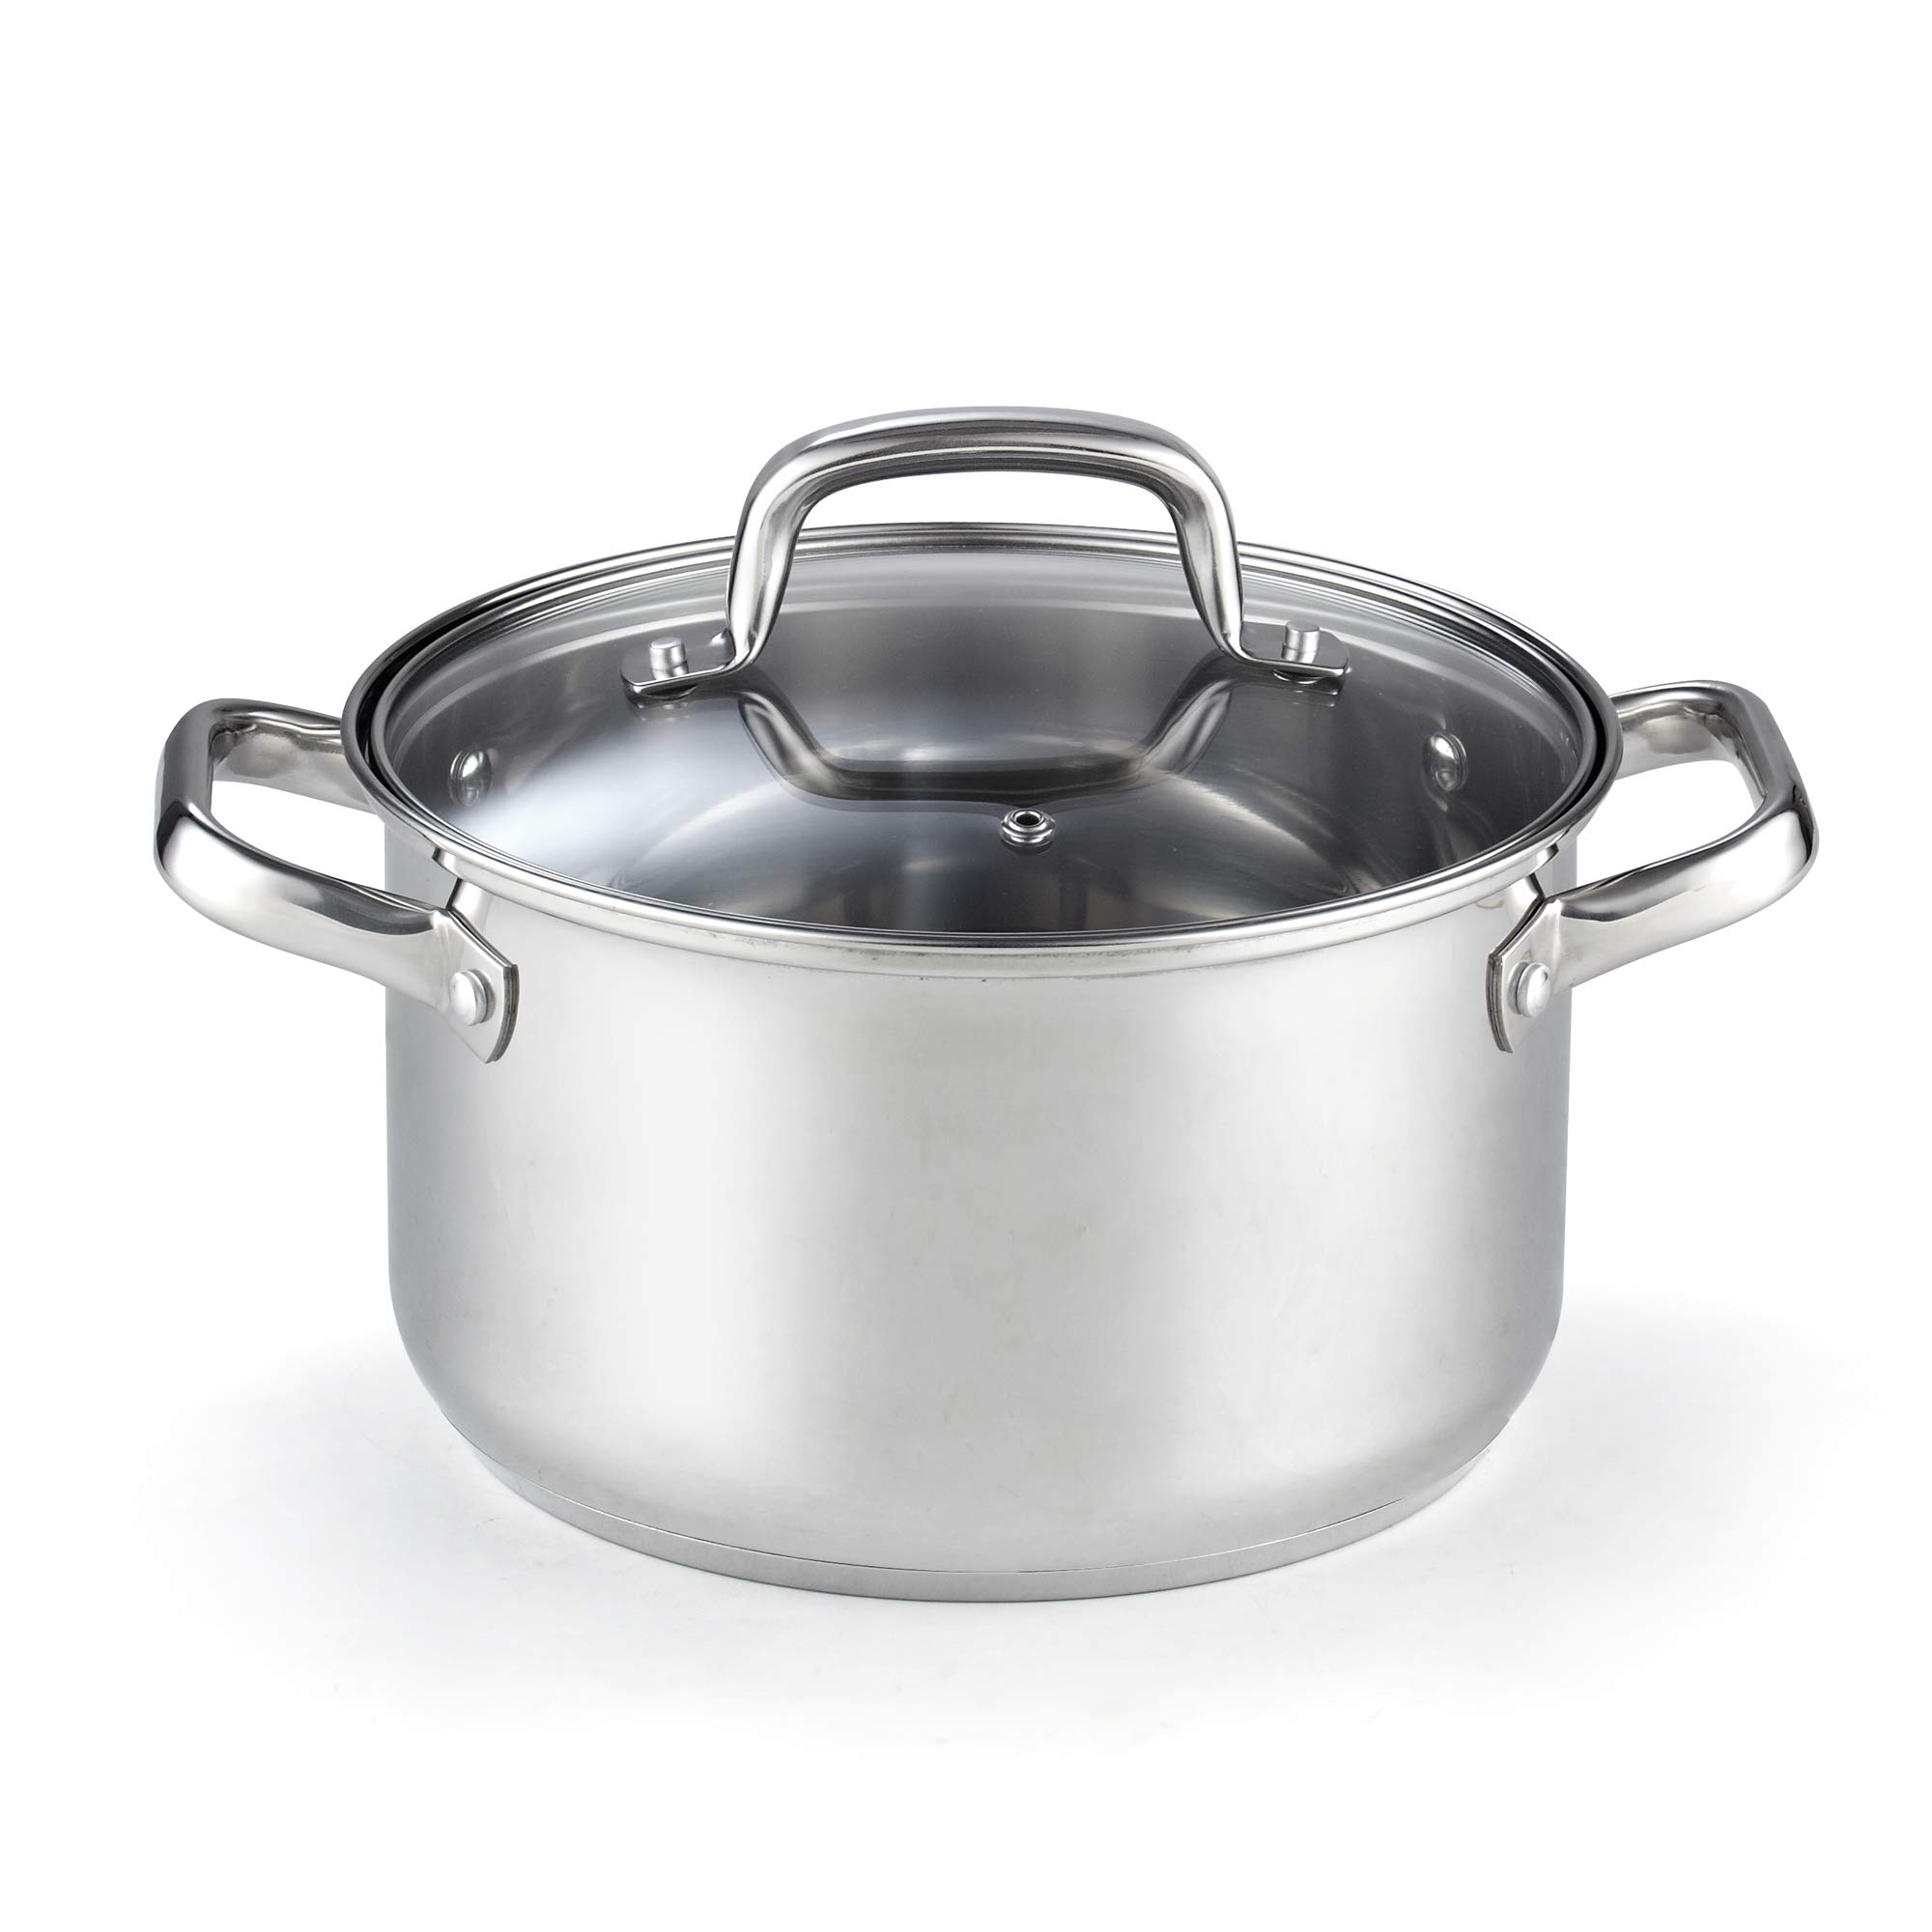 Cook N Home 02609 Lid 5-Quart Stainless Steel Casserole Stockpot Silver